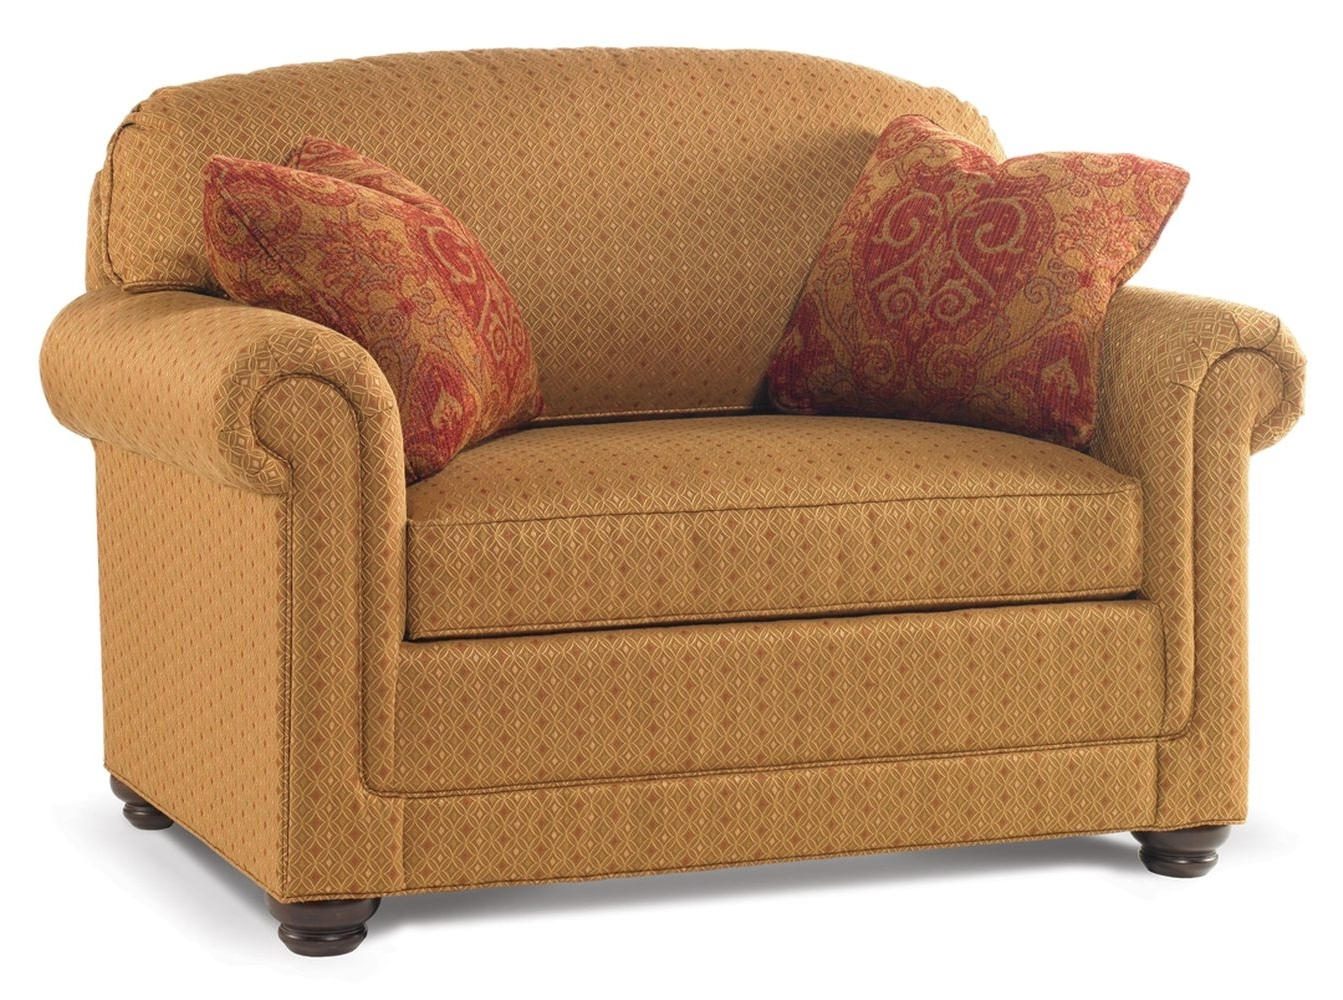 Small Sofas And Chairs For Trendy Small Twin Sleeper Sofas Chairs With Pillow And Storage Plus Brown (View 11 of 15)